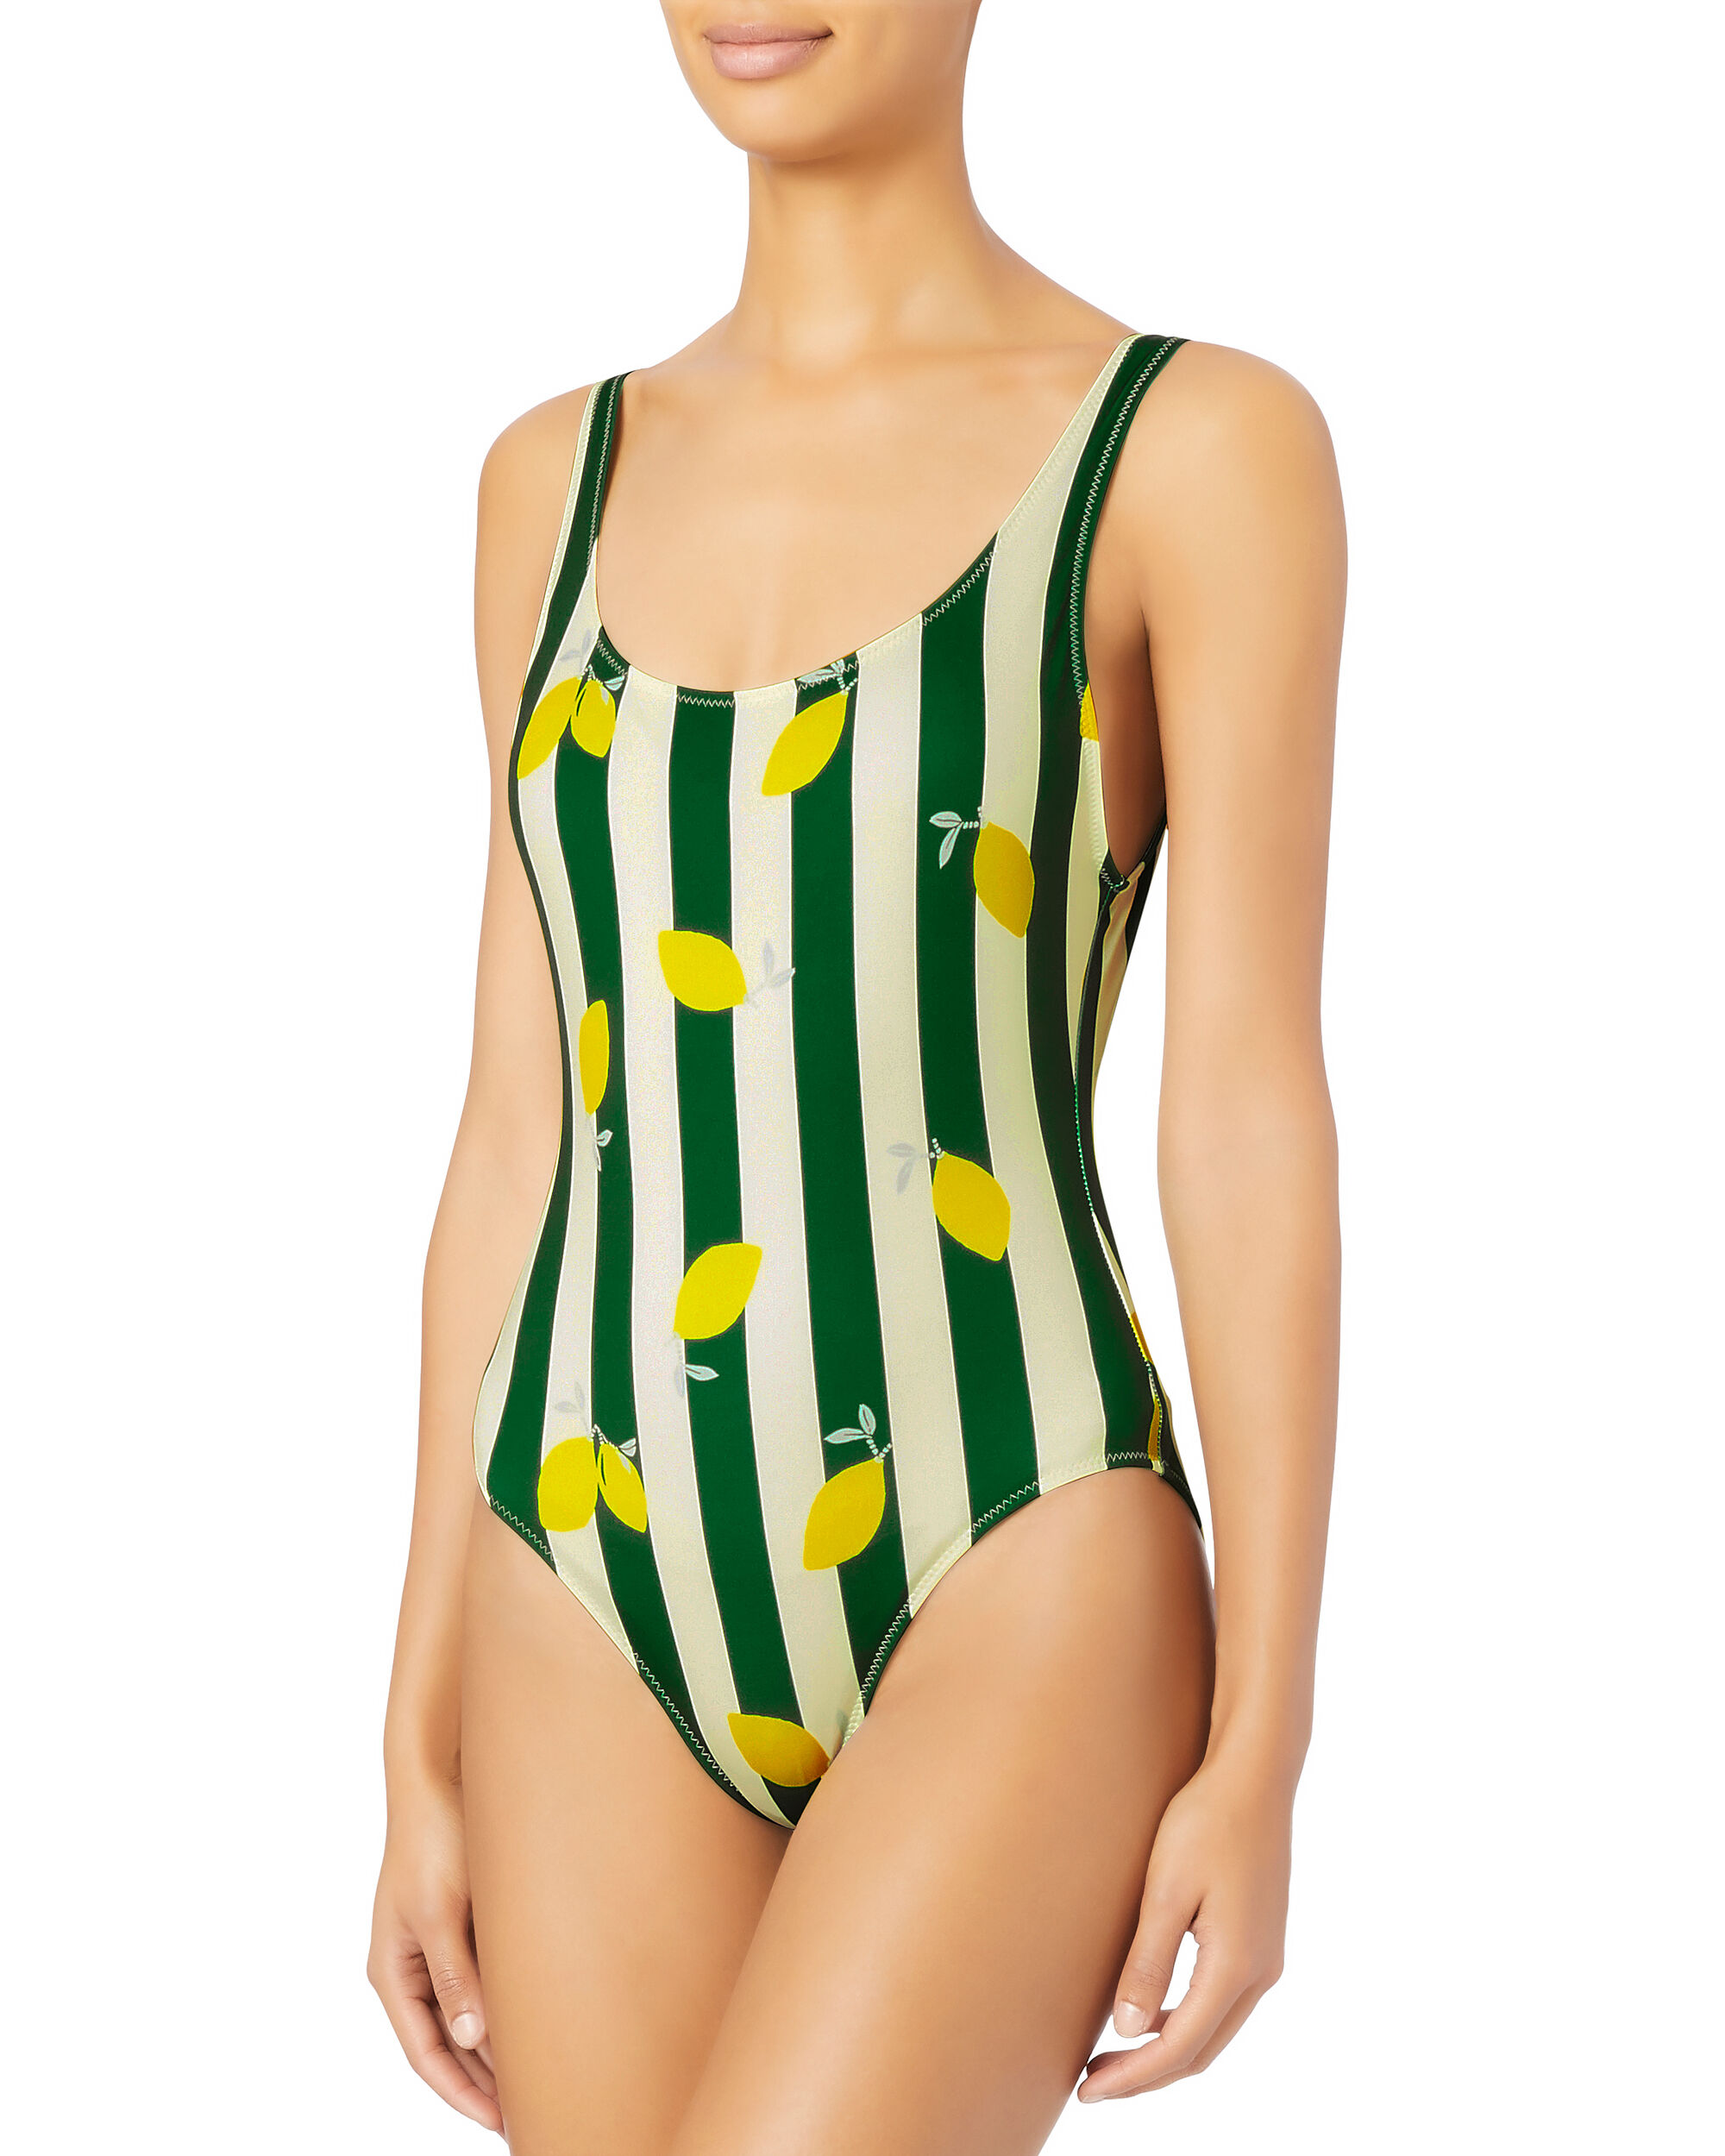 Anne-Marie Lemon-Striped One Piece Swimsuit, PATTERN, hi-res